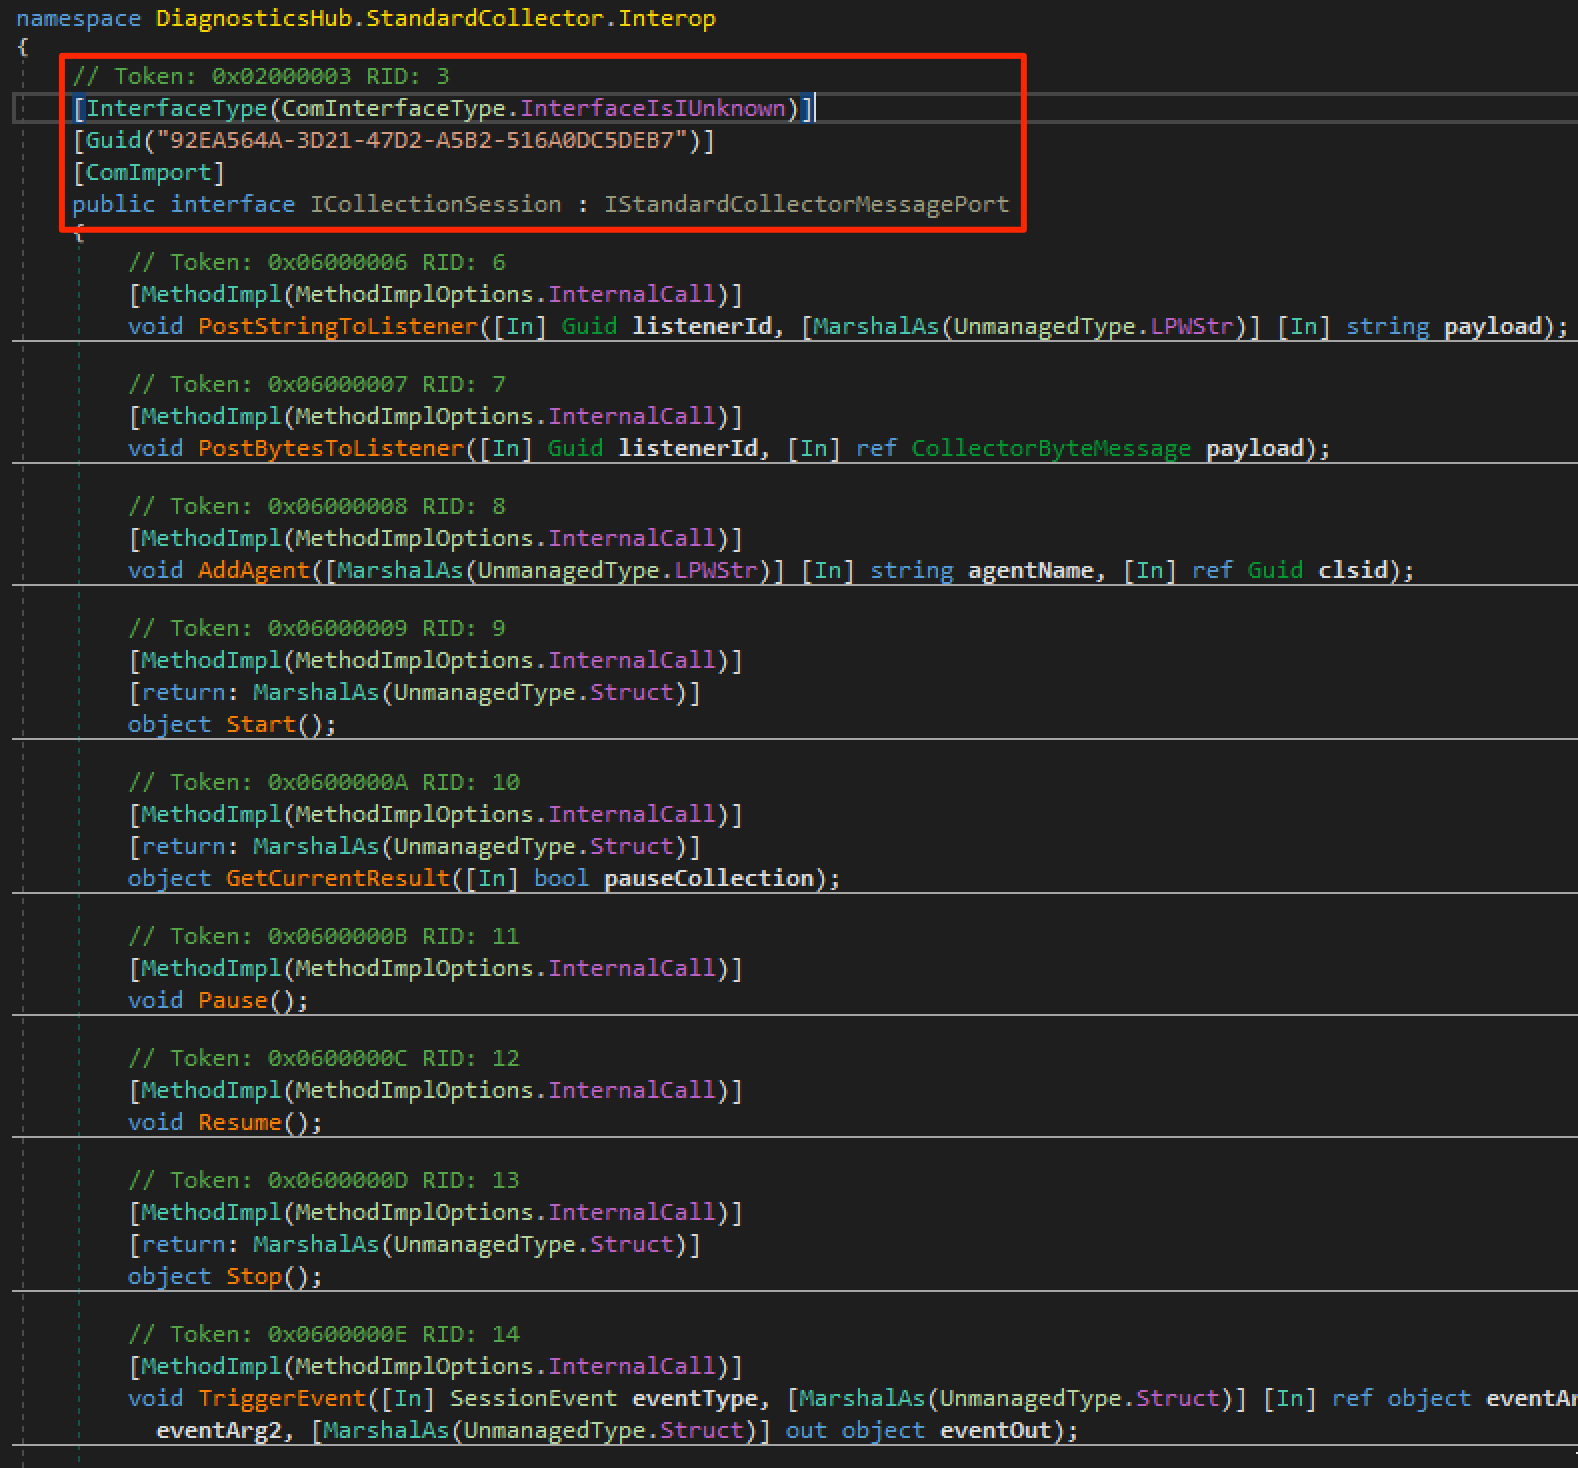 Visual Studio ICollectionSession definition with different IID